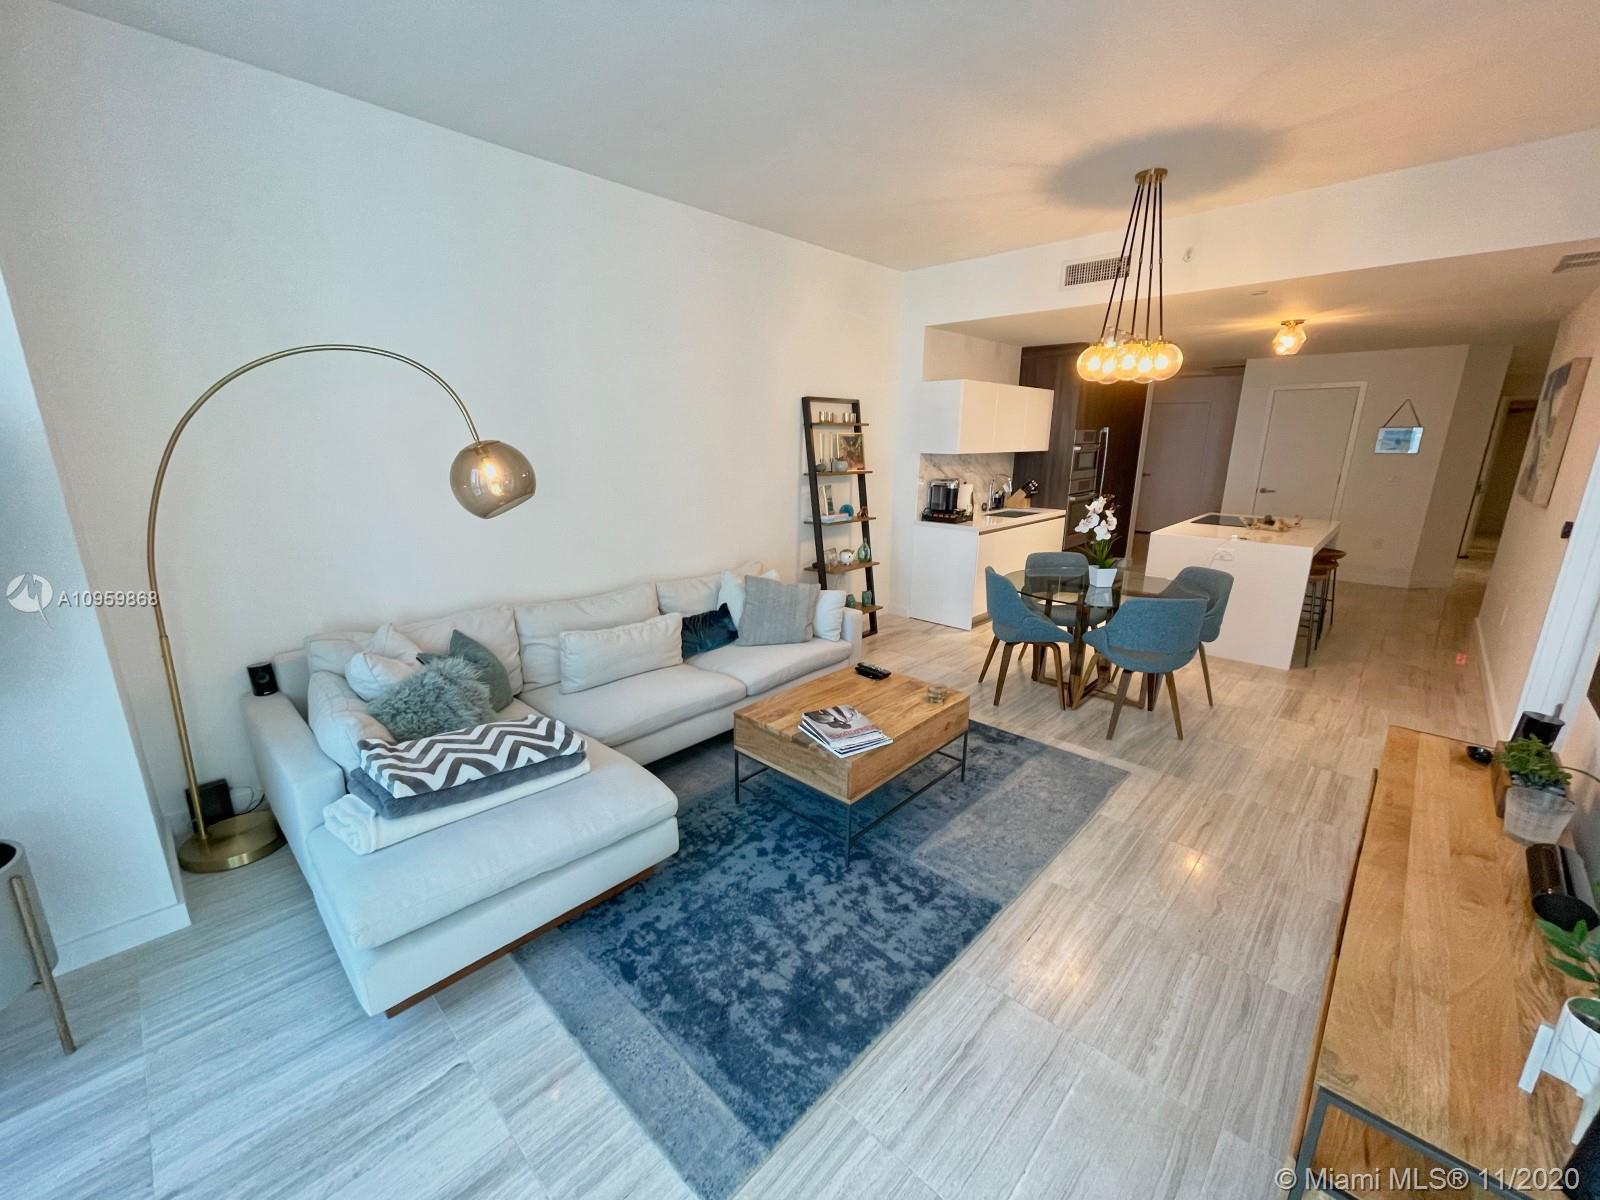 Spectacular 1,386 SQFT 1 Bed + Den + 2 Full Baths with water views residence! Subzero refrigerator &